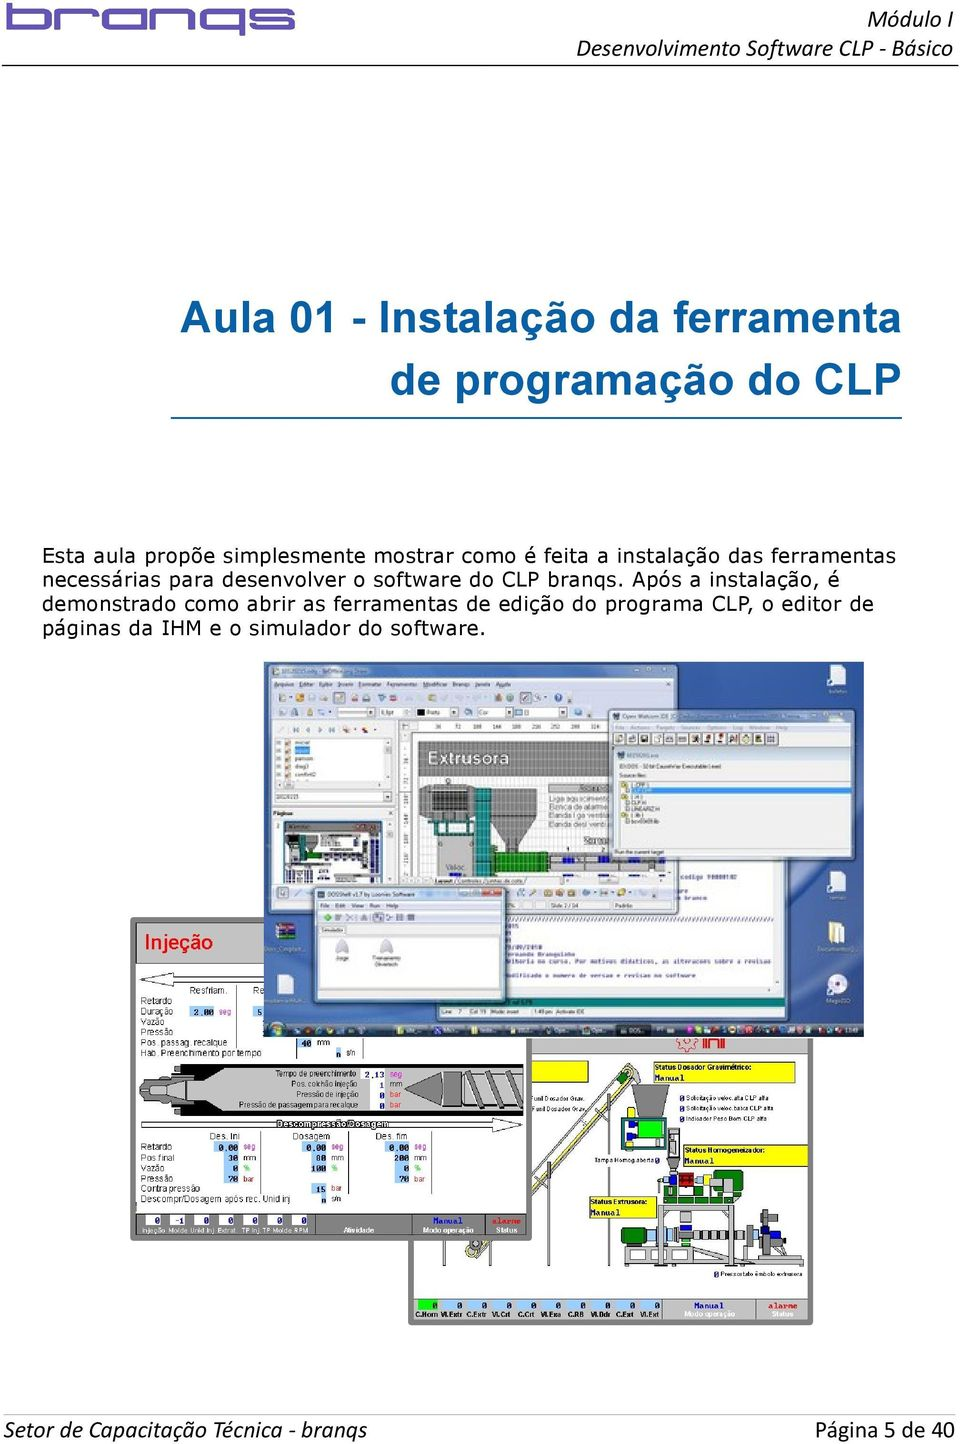 software do CLP branqs.